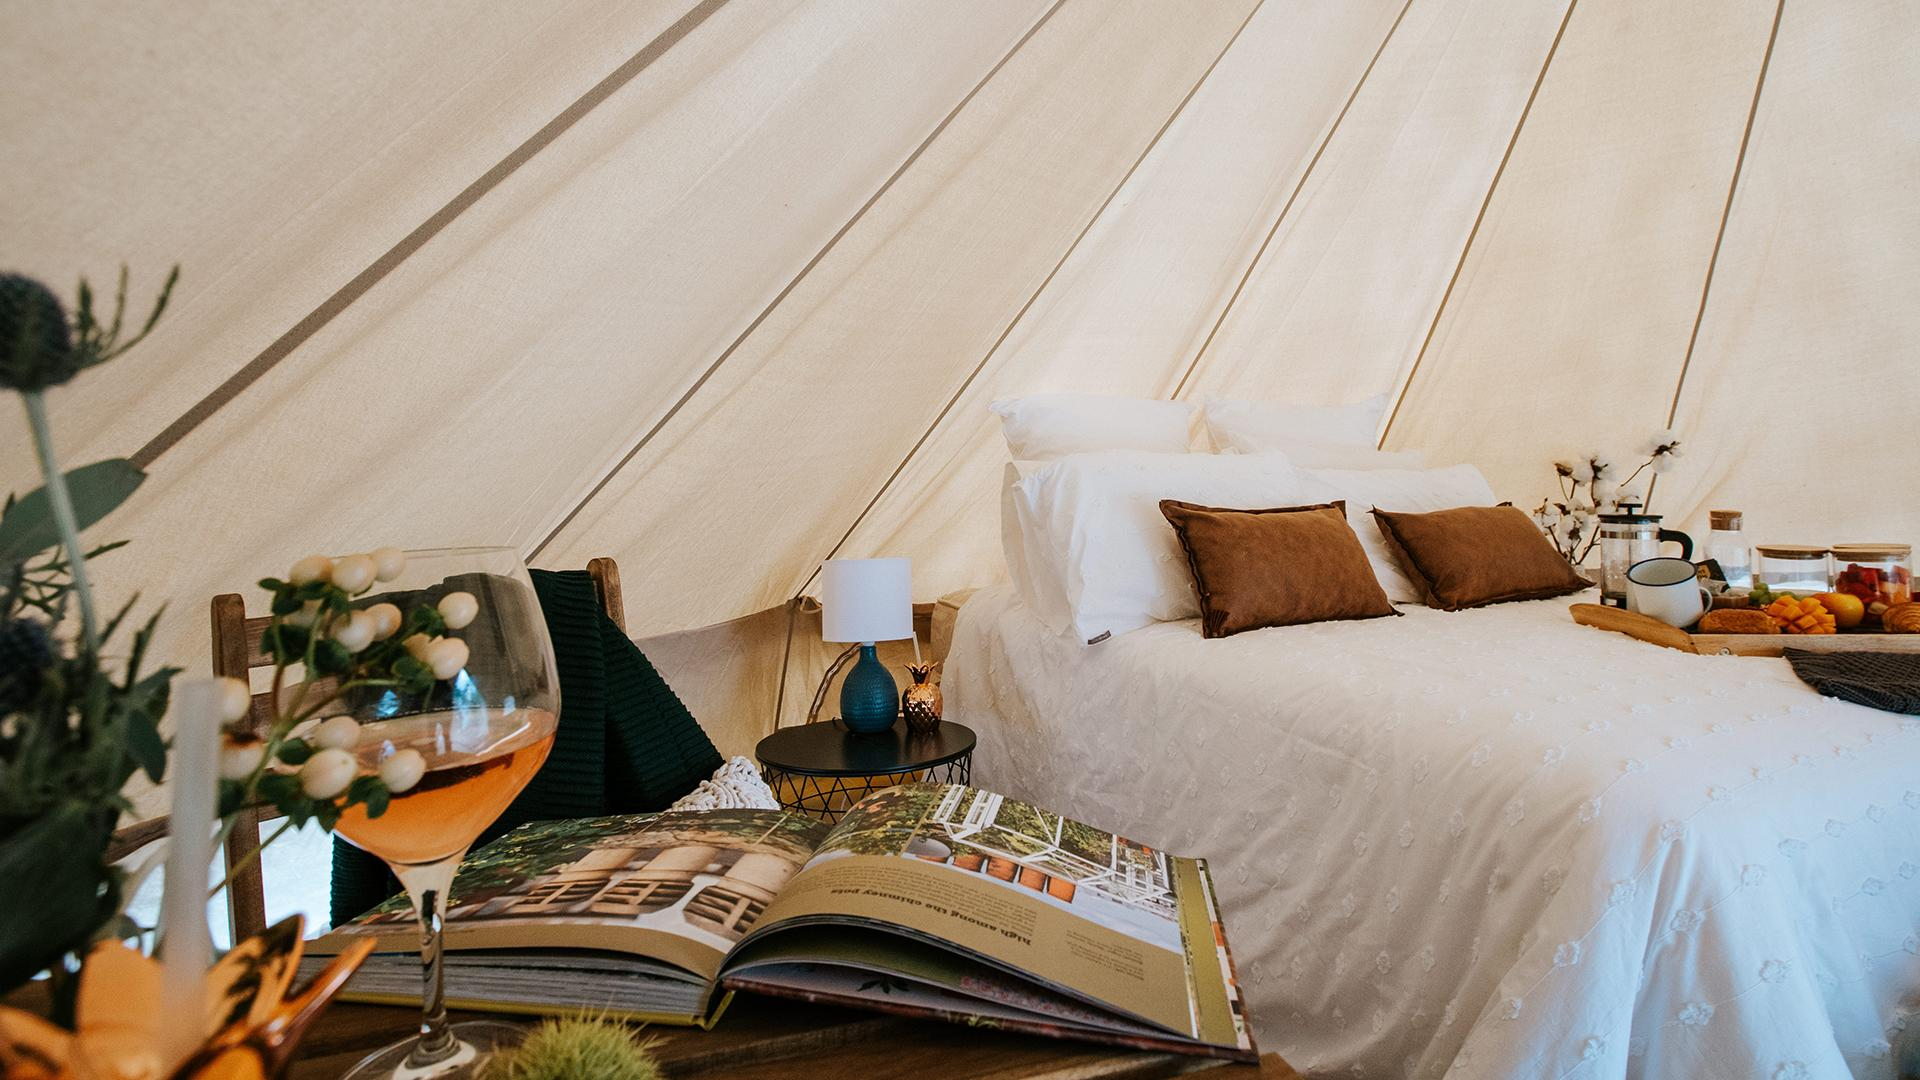 Bell Tent image 1 at Mansfield Glamping by Mansfield Shire, Victoria, Australia